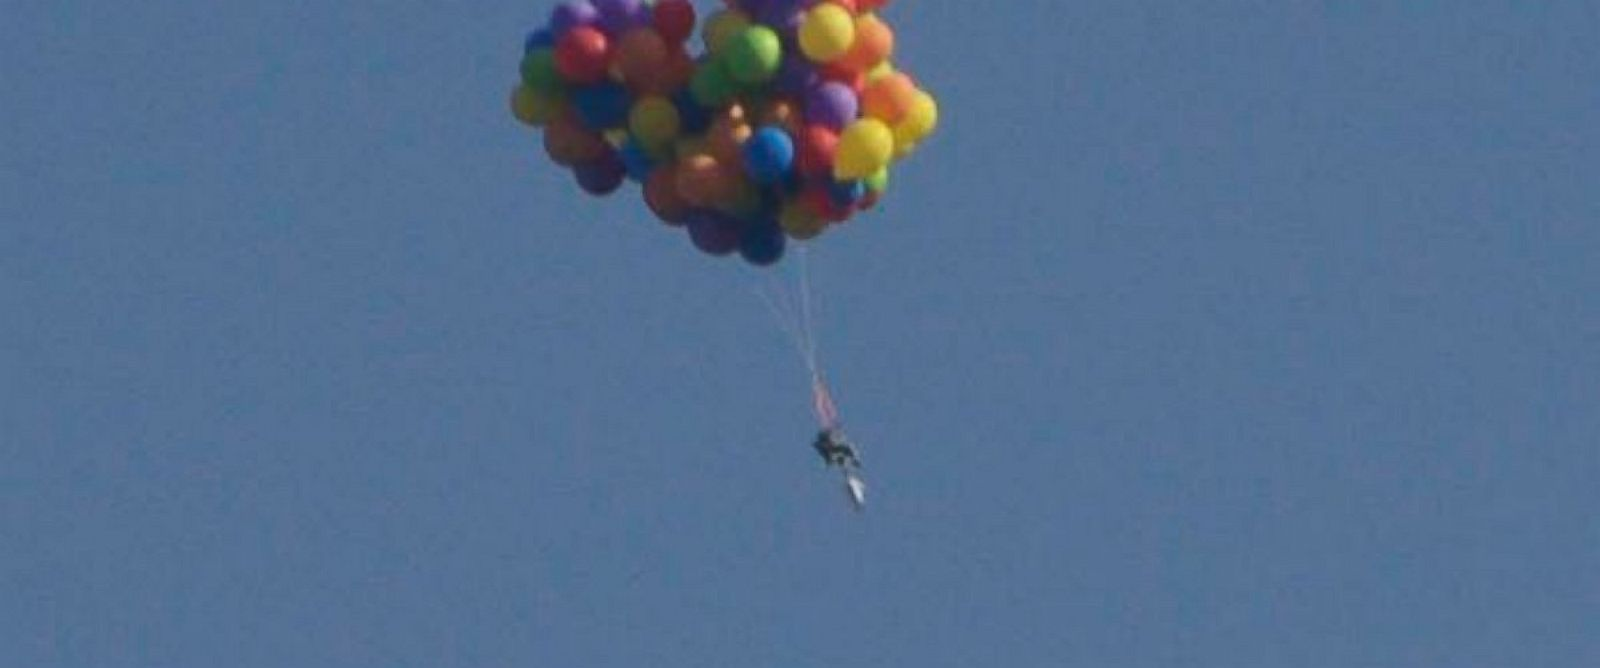 Canadian Man Arrested After Flying Lawn Chair With Helium